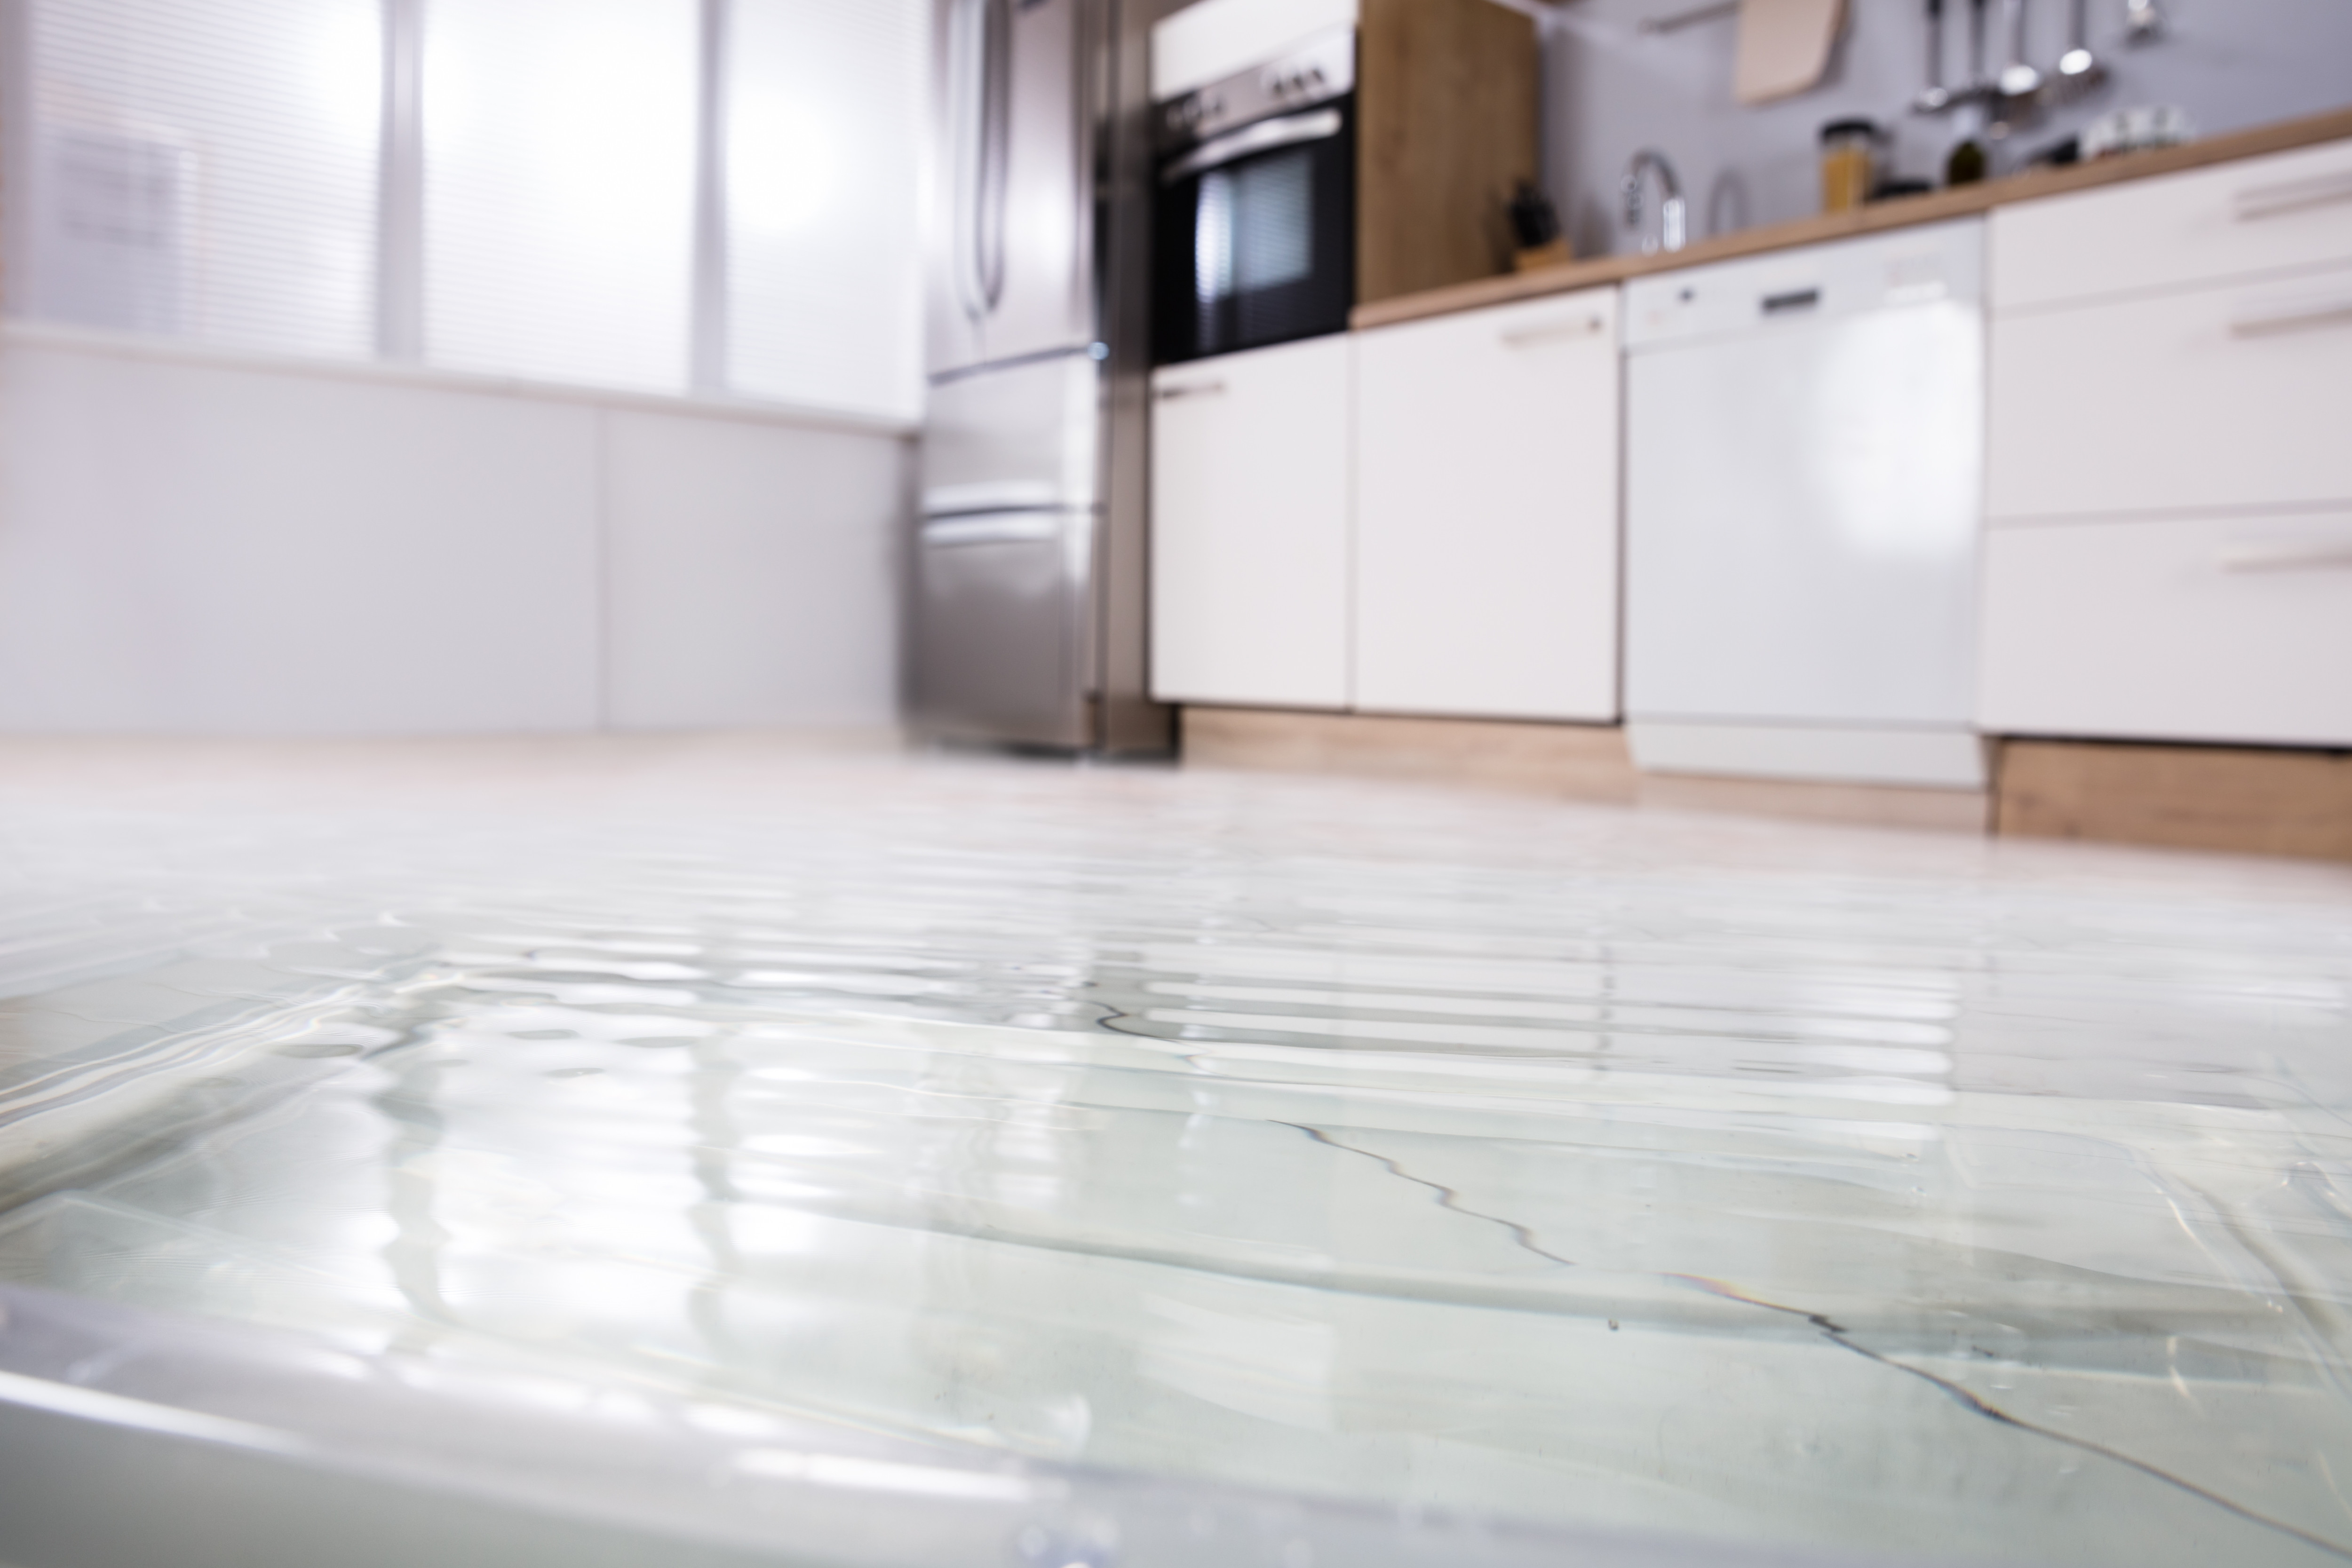 Image for Post Flood Water Damage Clean Up Tips